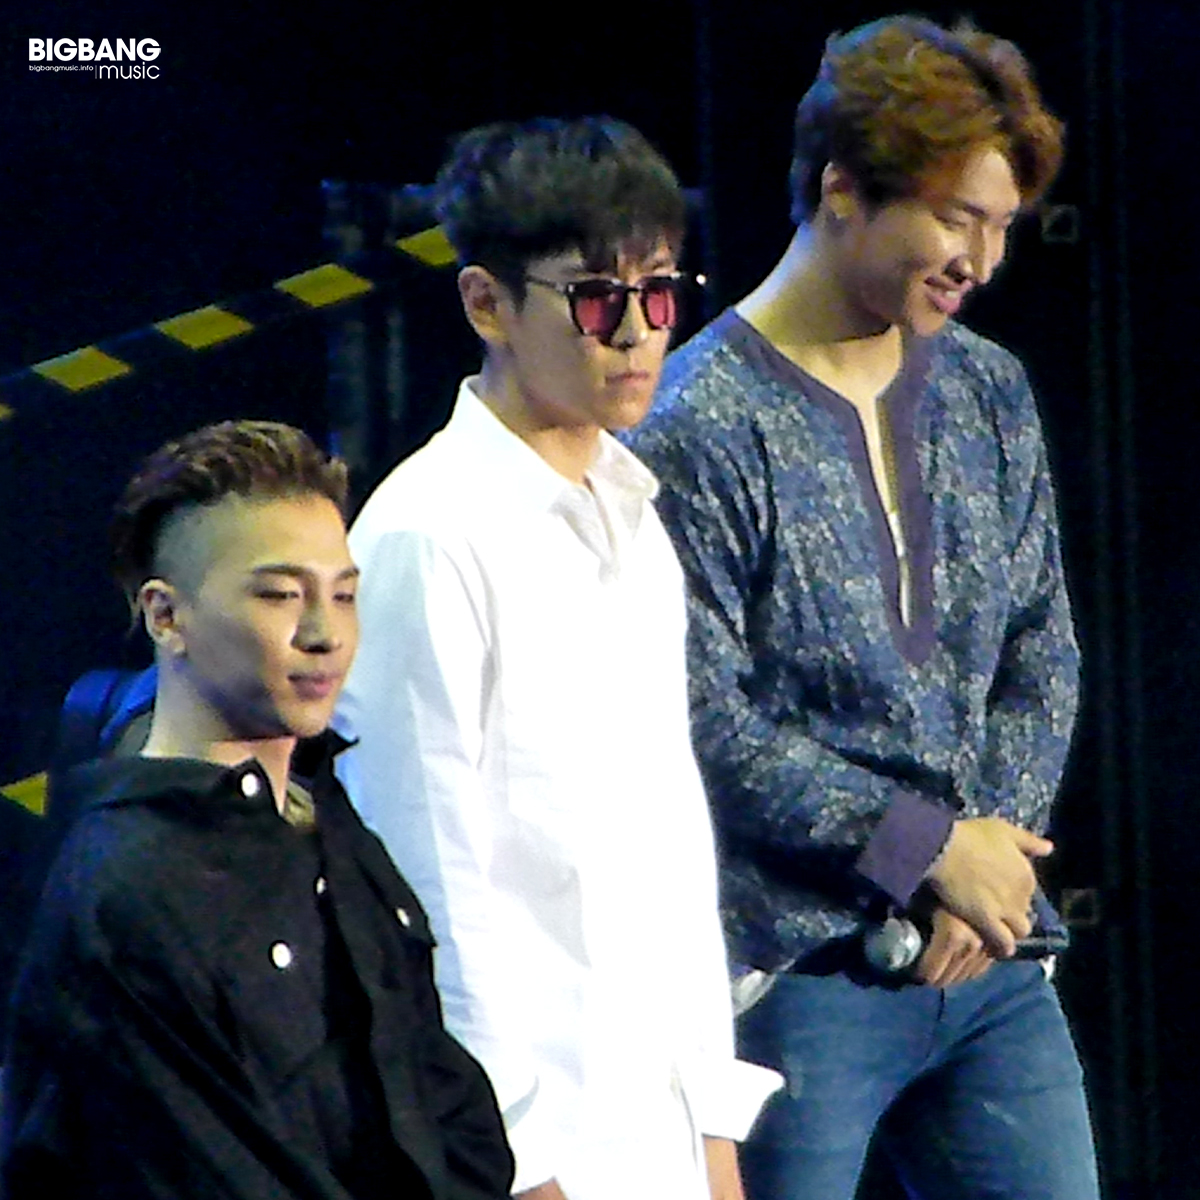 BBmusic-BIGBANG-Hong-Kong-Day-1-2016-07-22-11